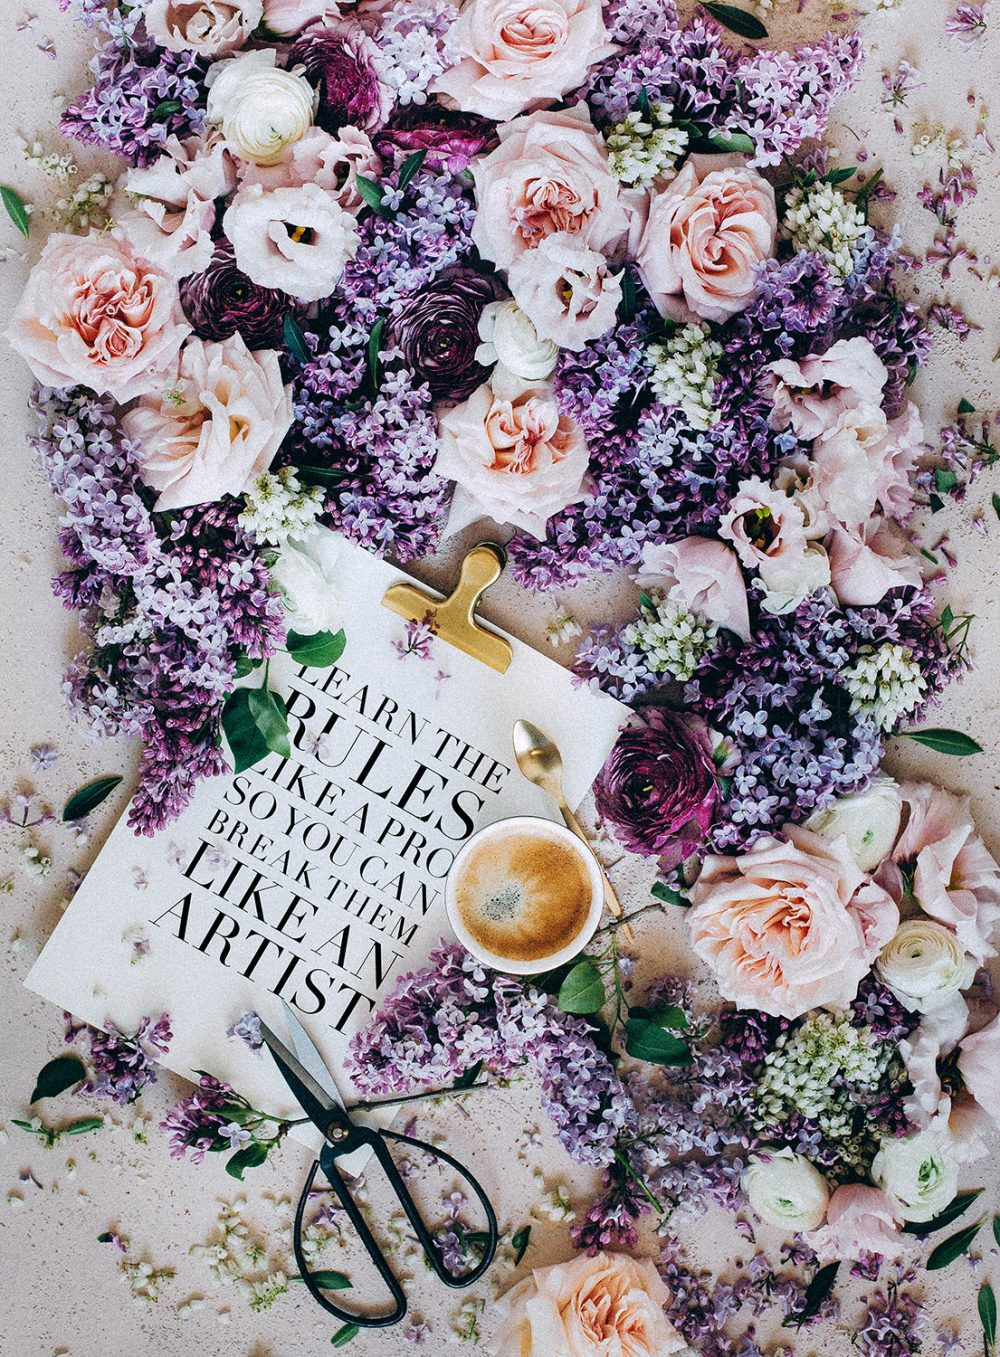 Fine Art Flatlay Wedding mat.kb Quote Learn the rules like a pro so you can break them like an artist Floral Designer Coffee Heiraten Schweiz Hochzeitsdekoration